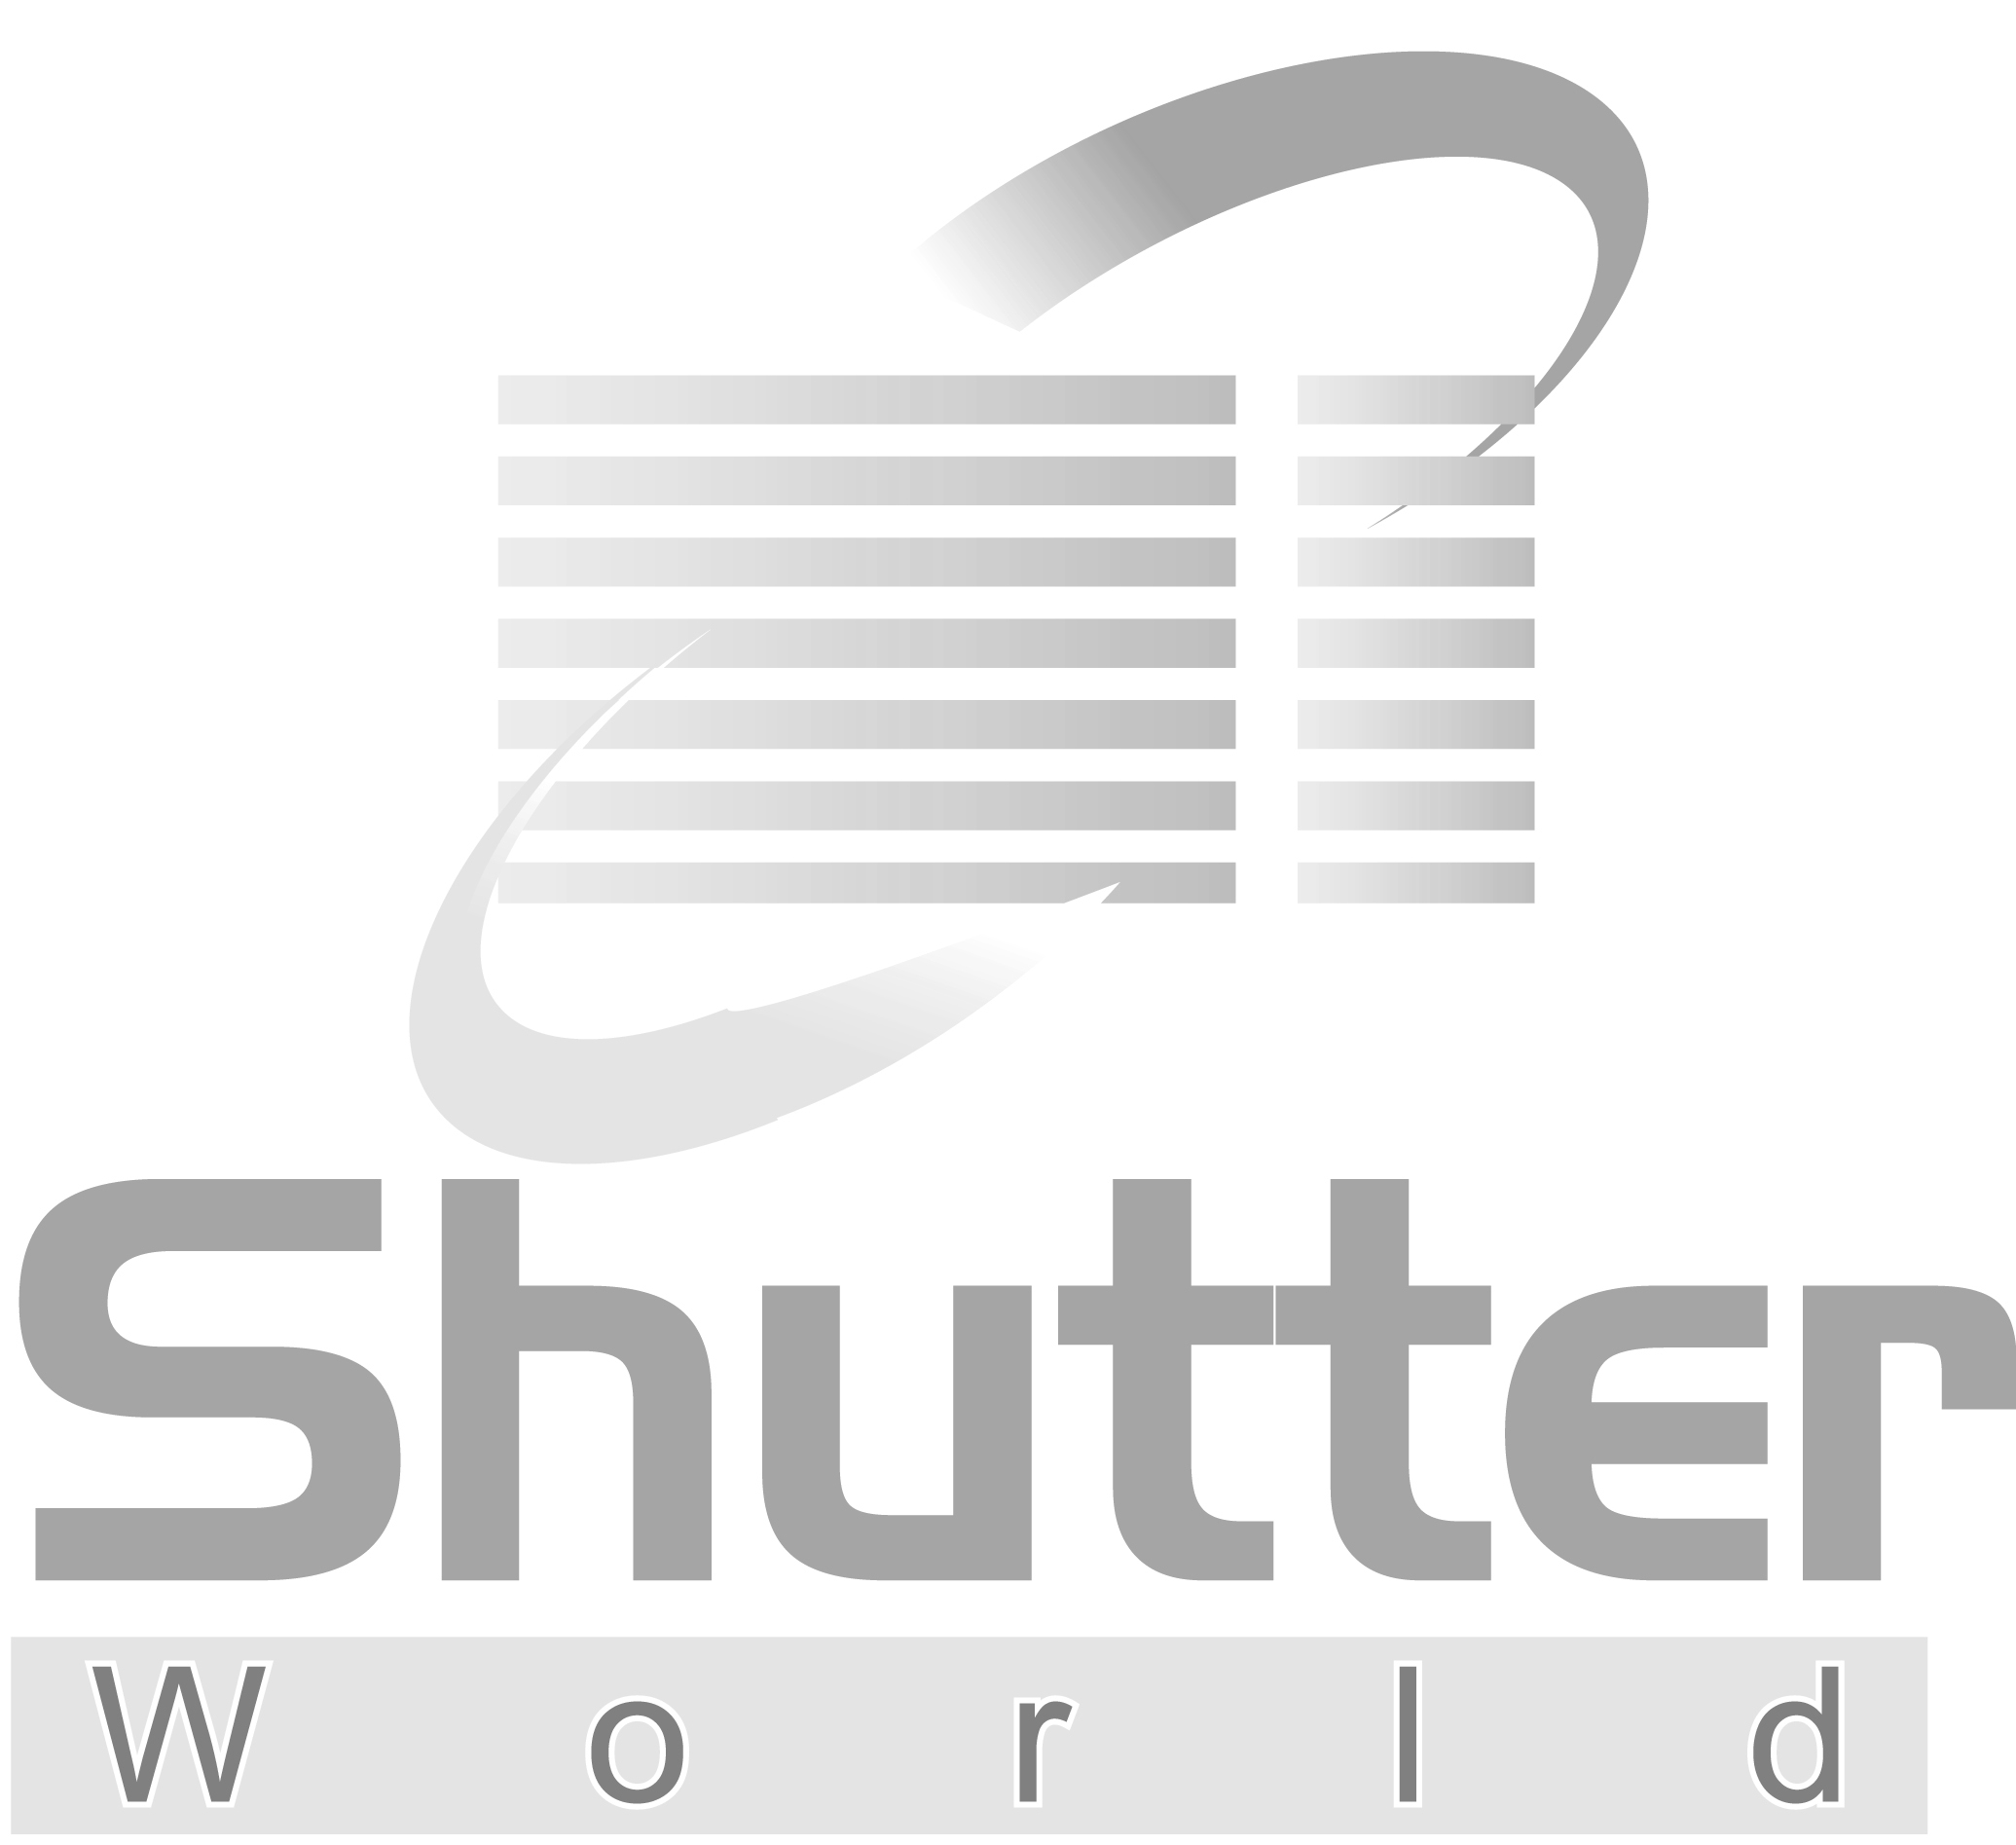 Read SHUTTER WORLD Reviews